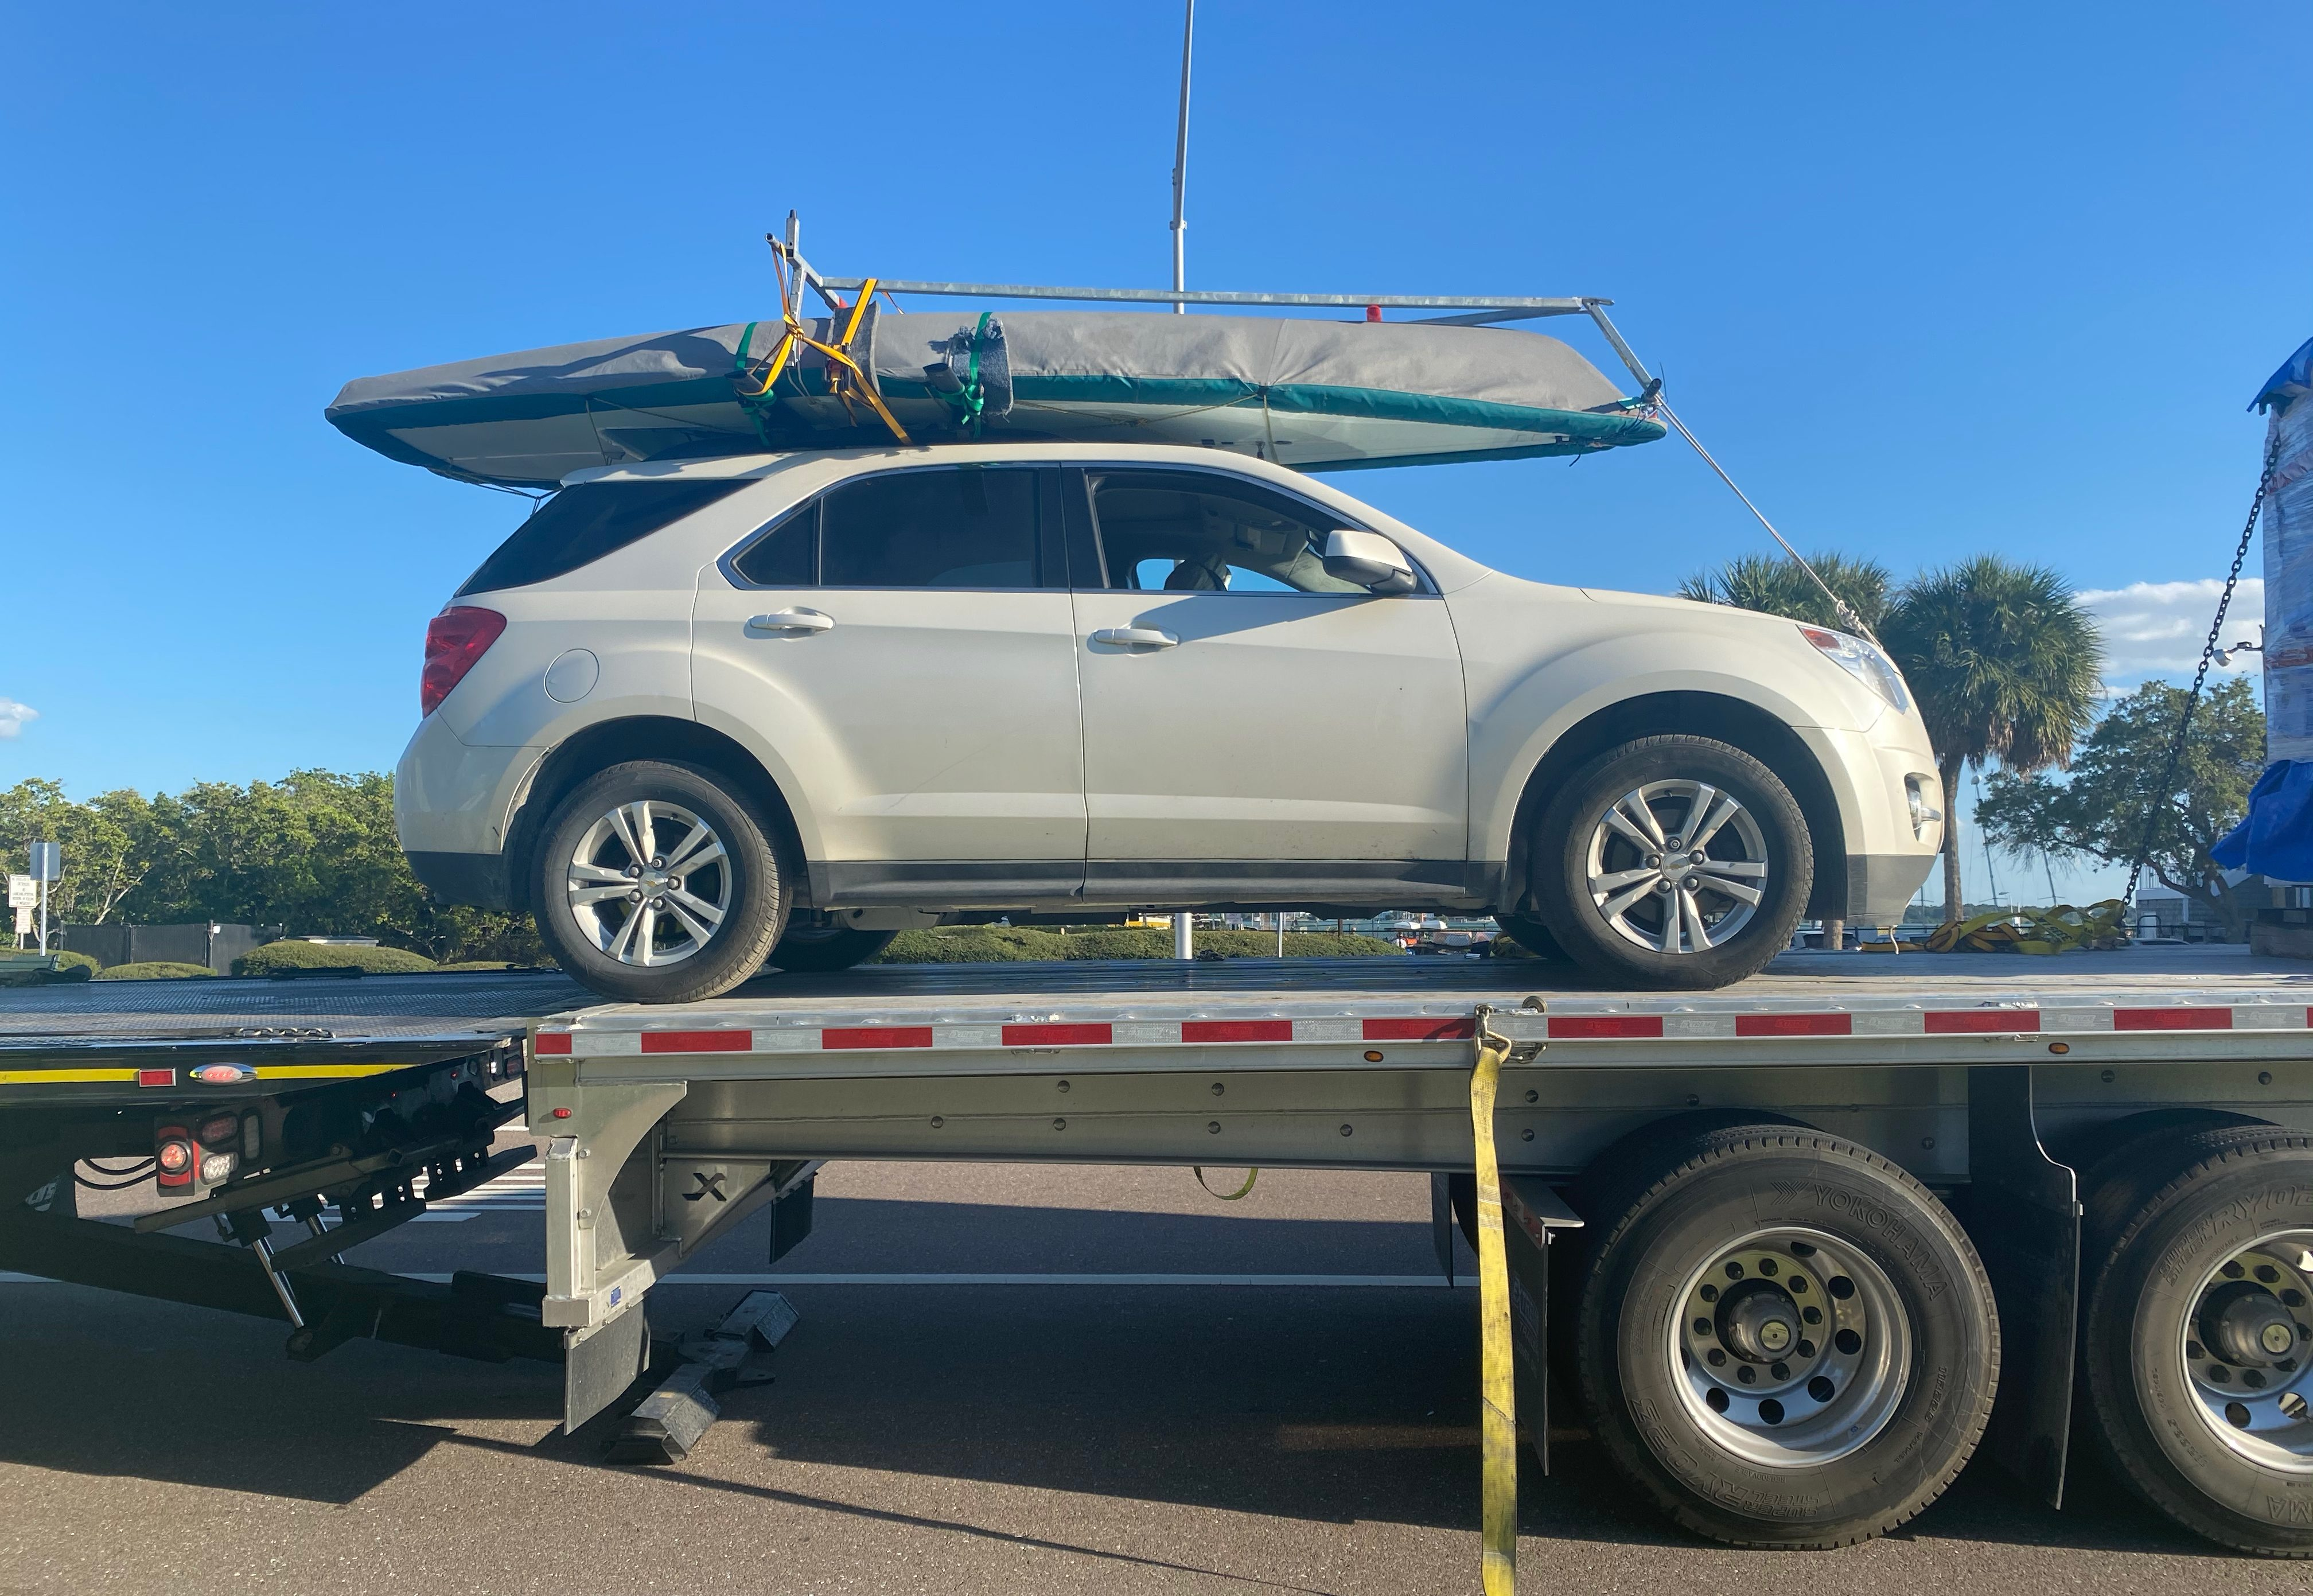 Car with boat on roof rack